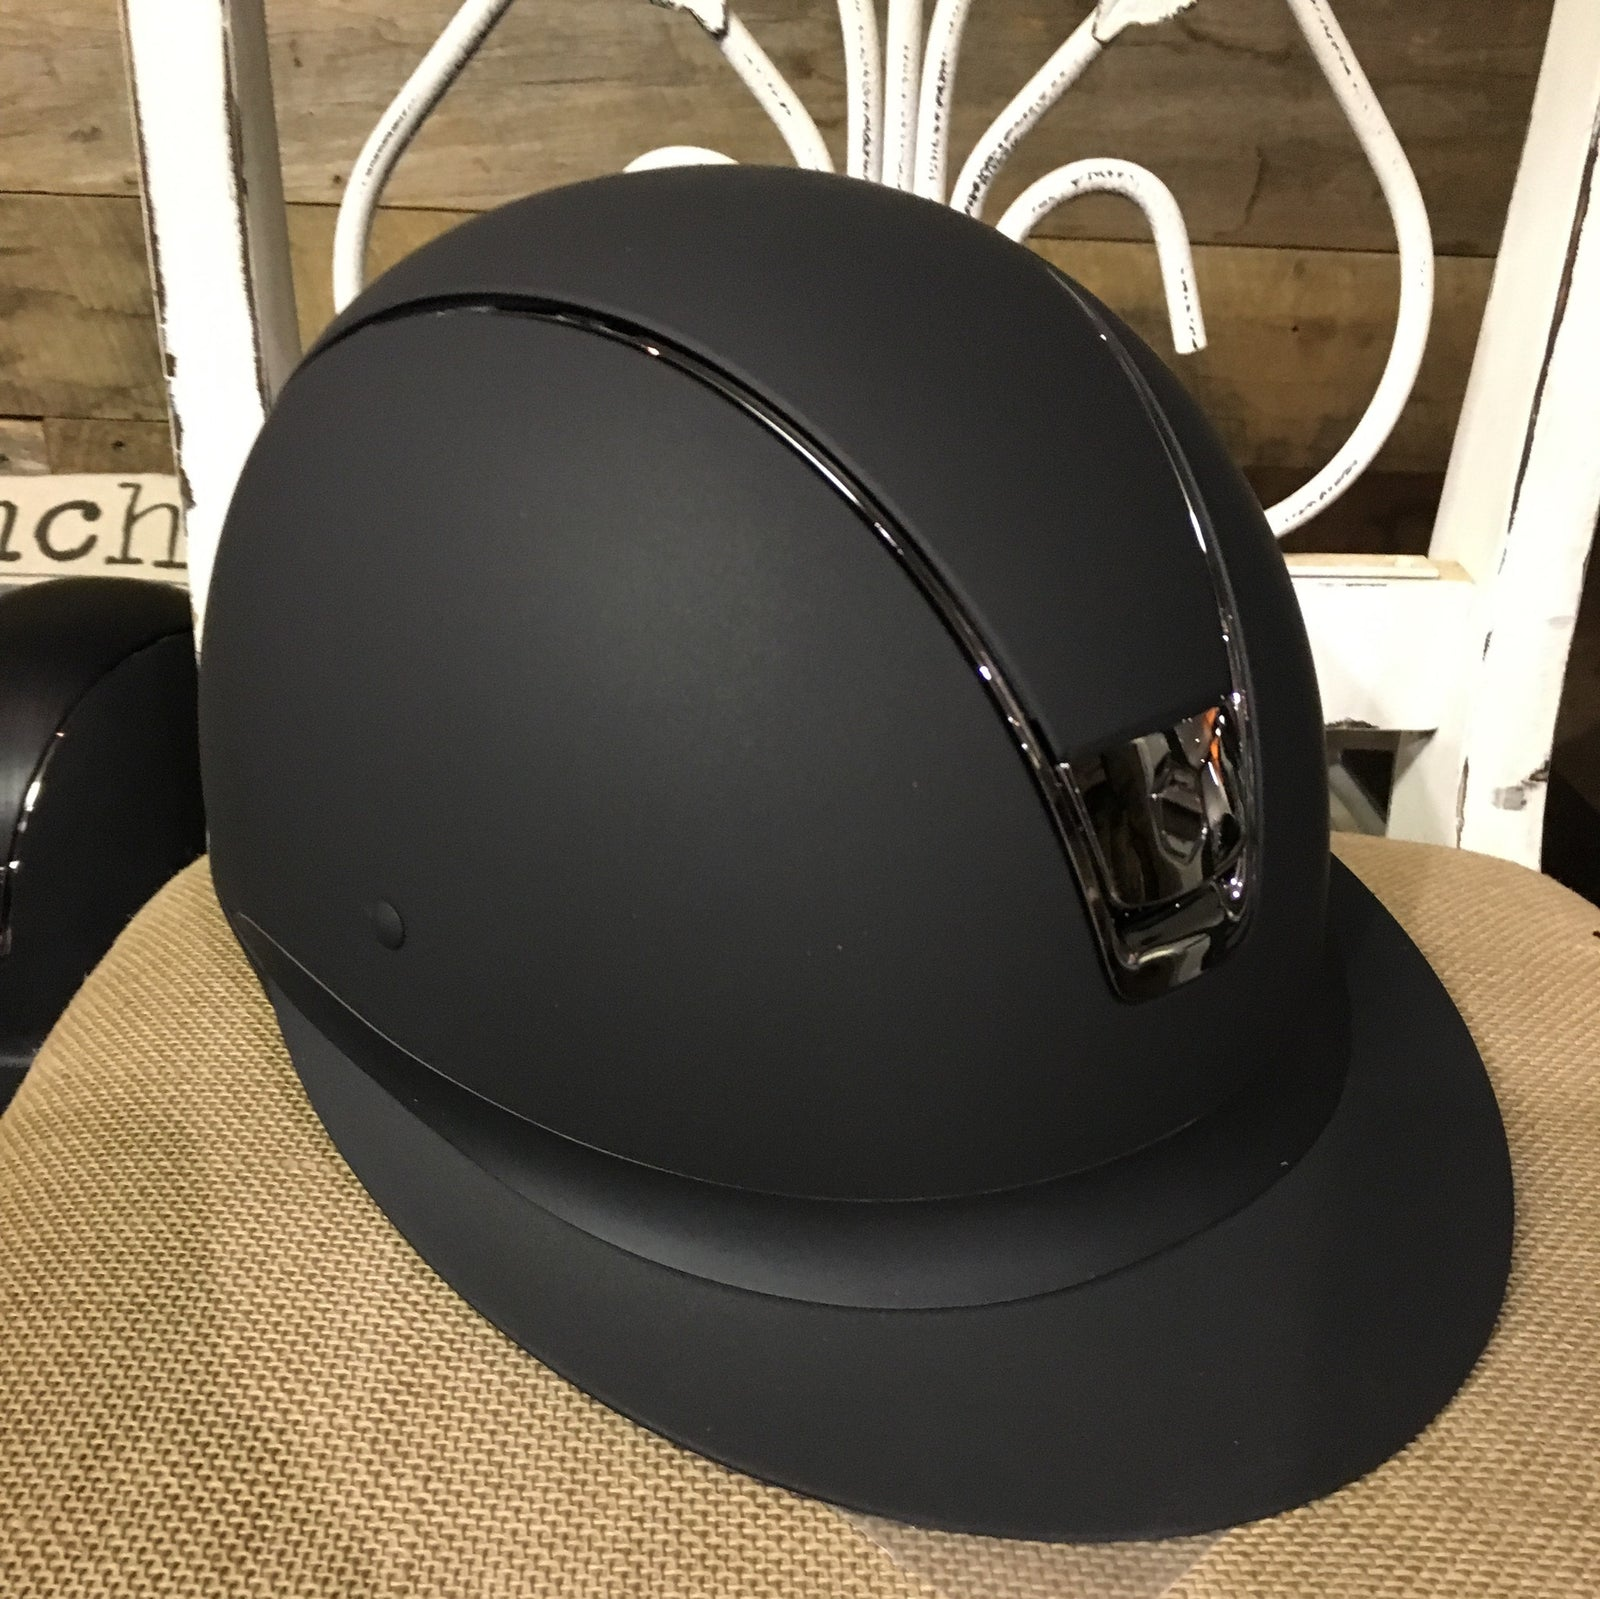 Miss Shield Samshield wide brim helmet for sun protection